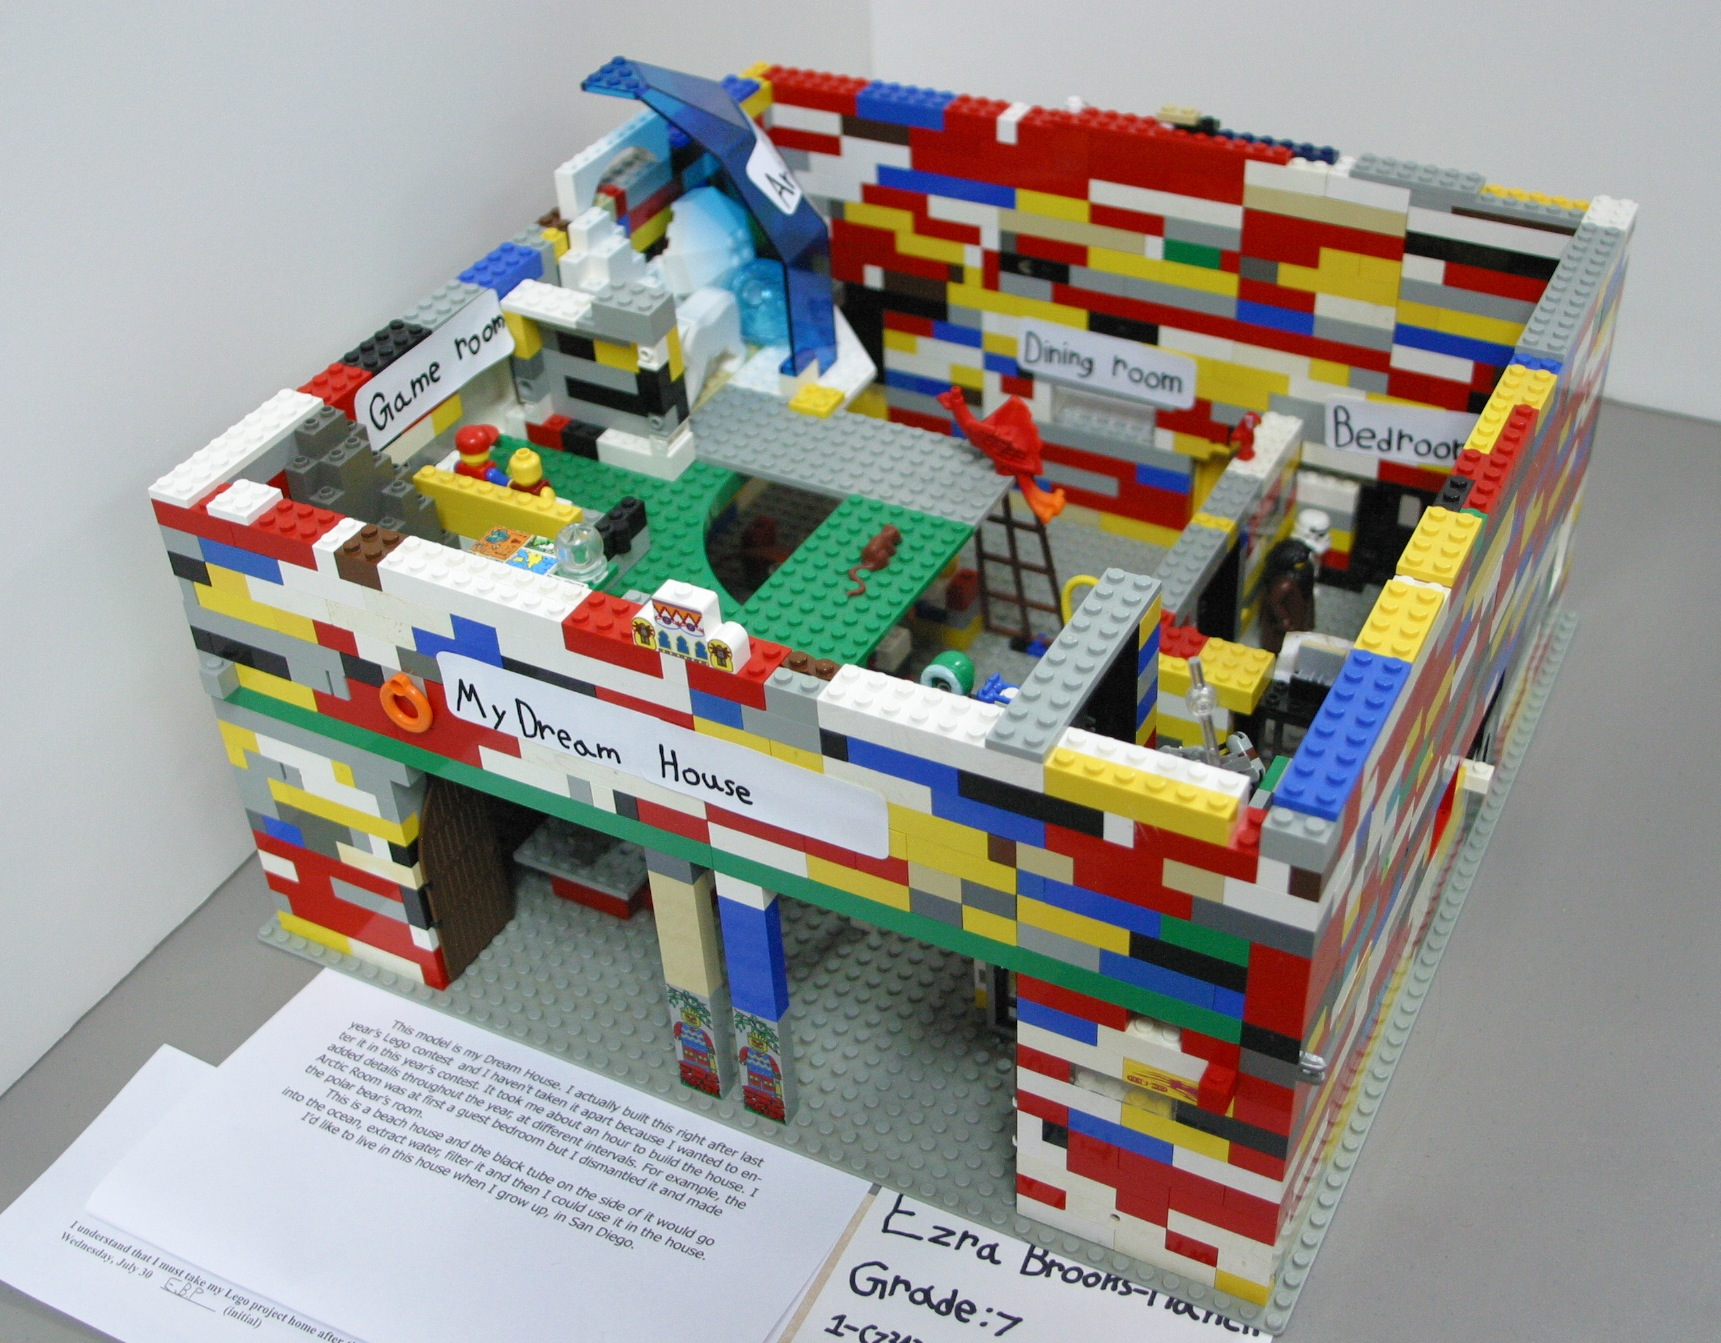 School project dream house